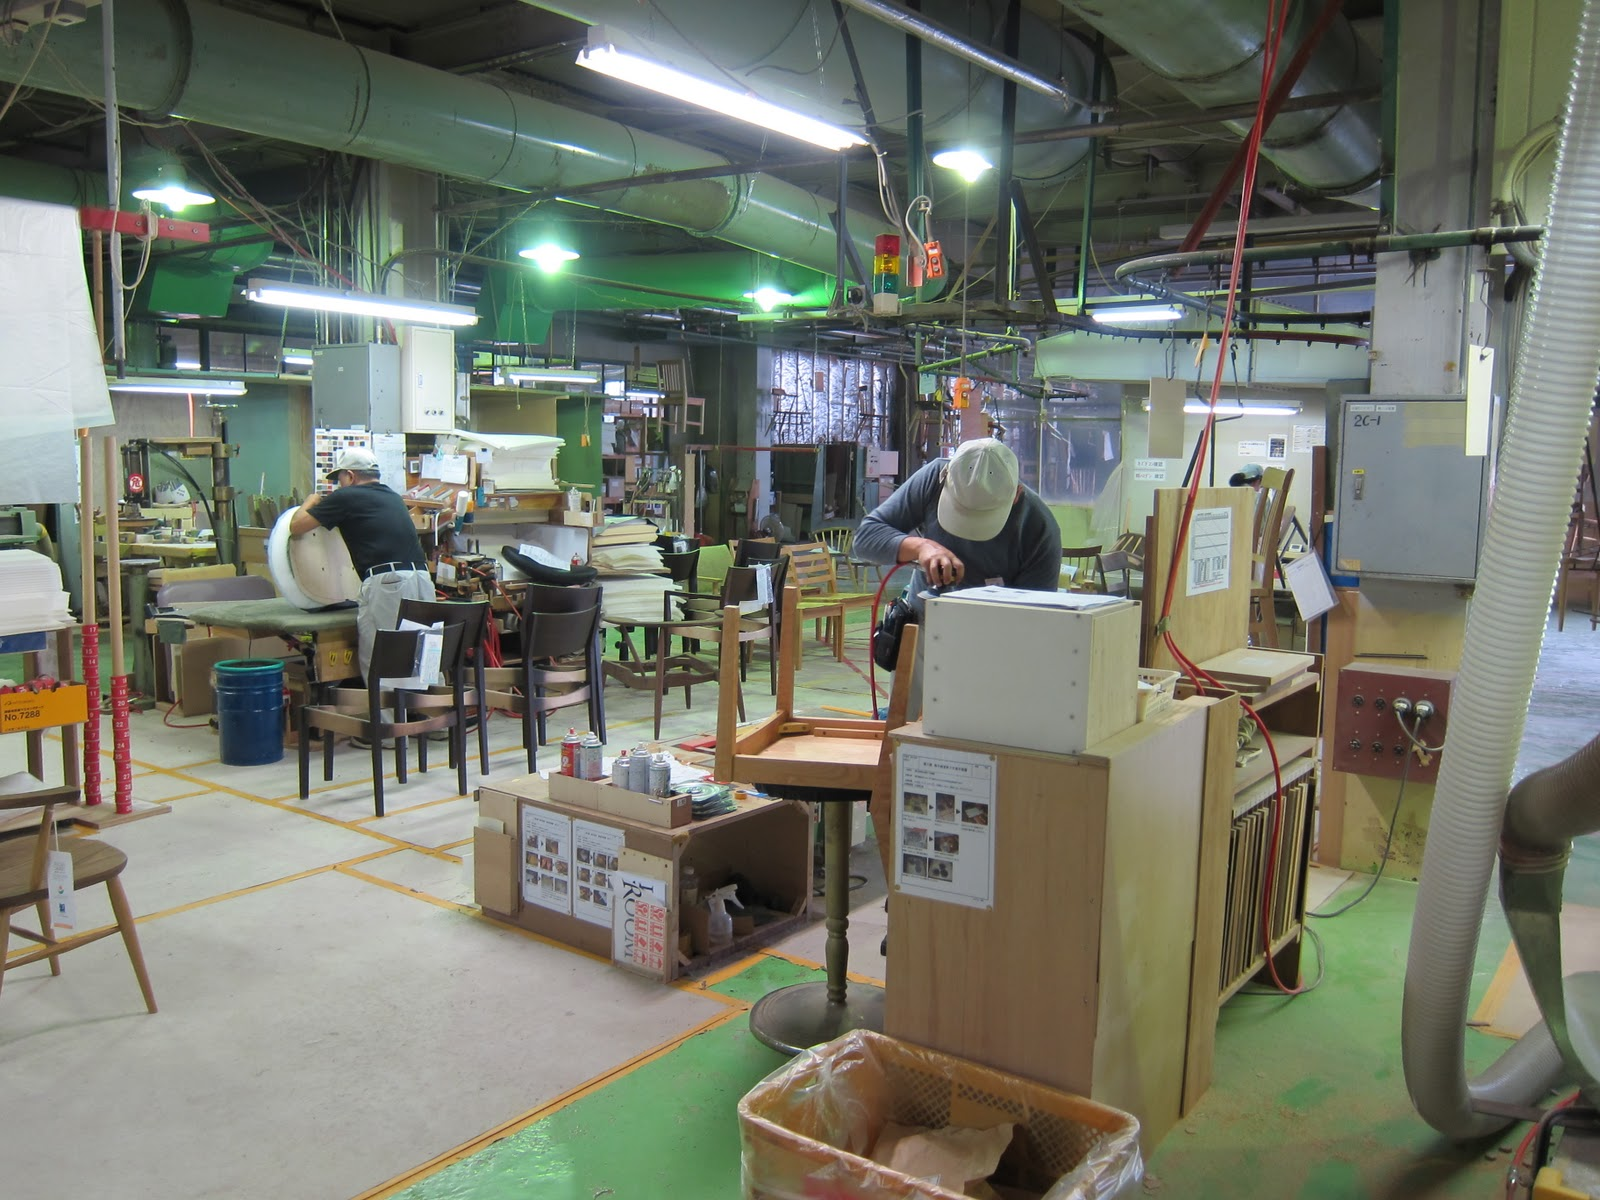 louie rigano's fulbright year in japan: a look at the takayama